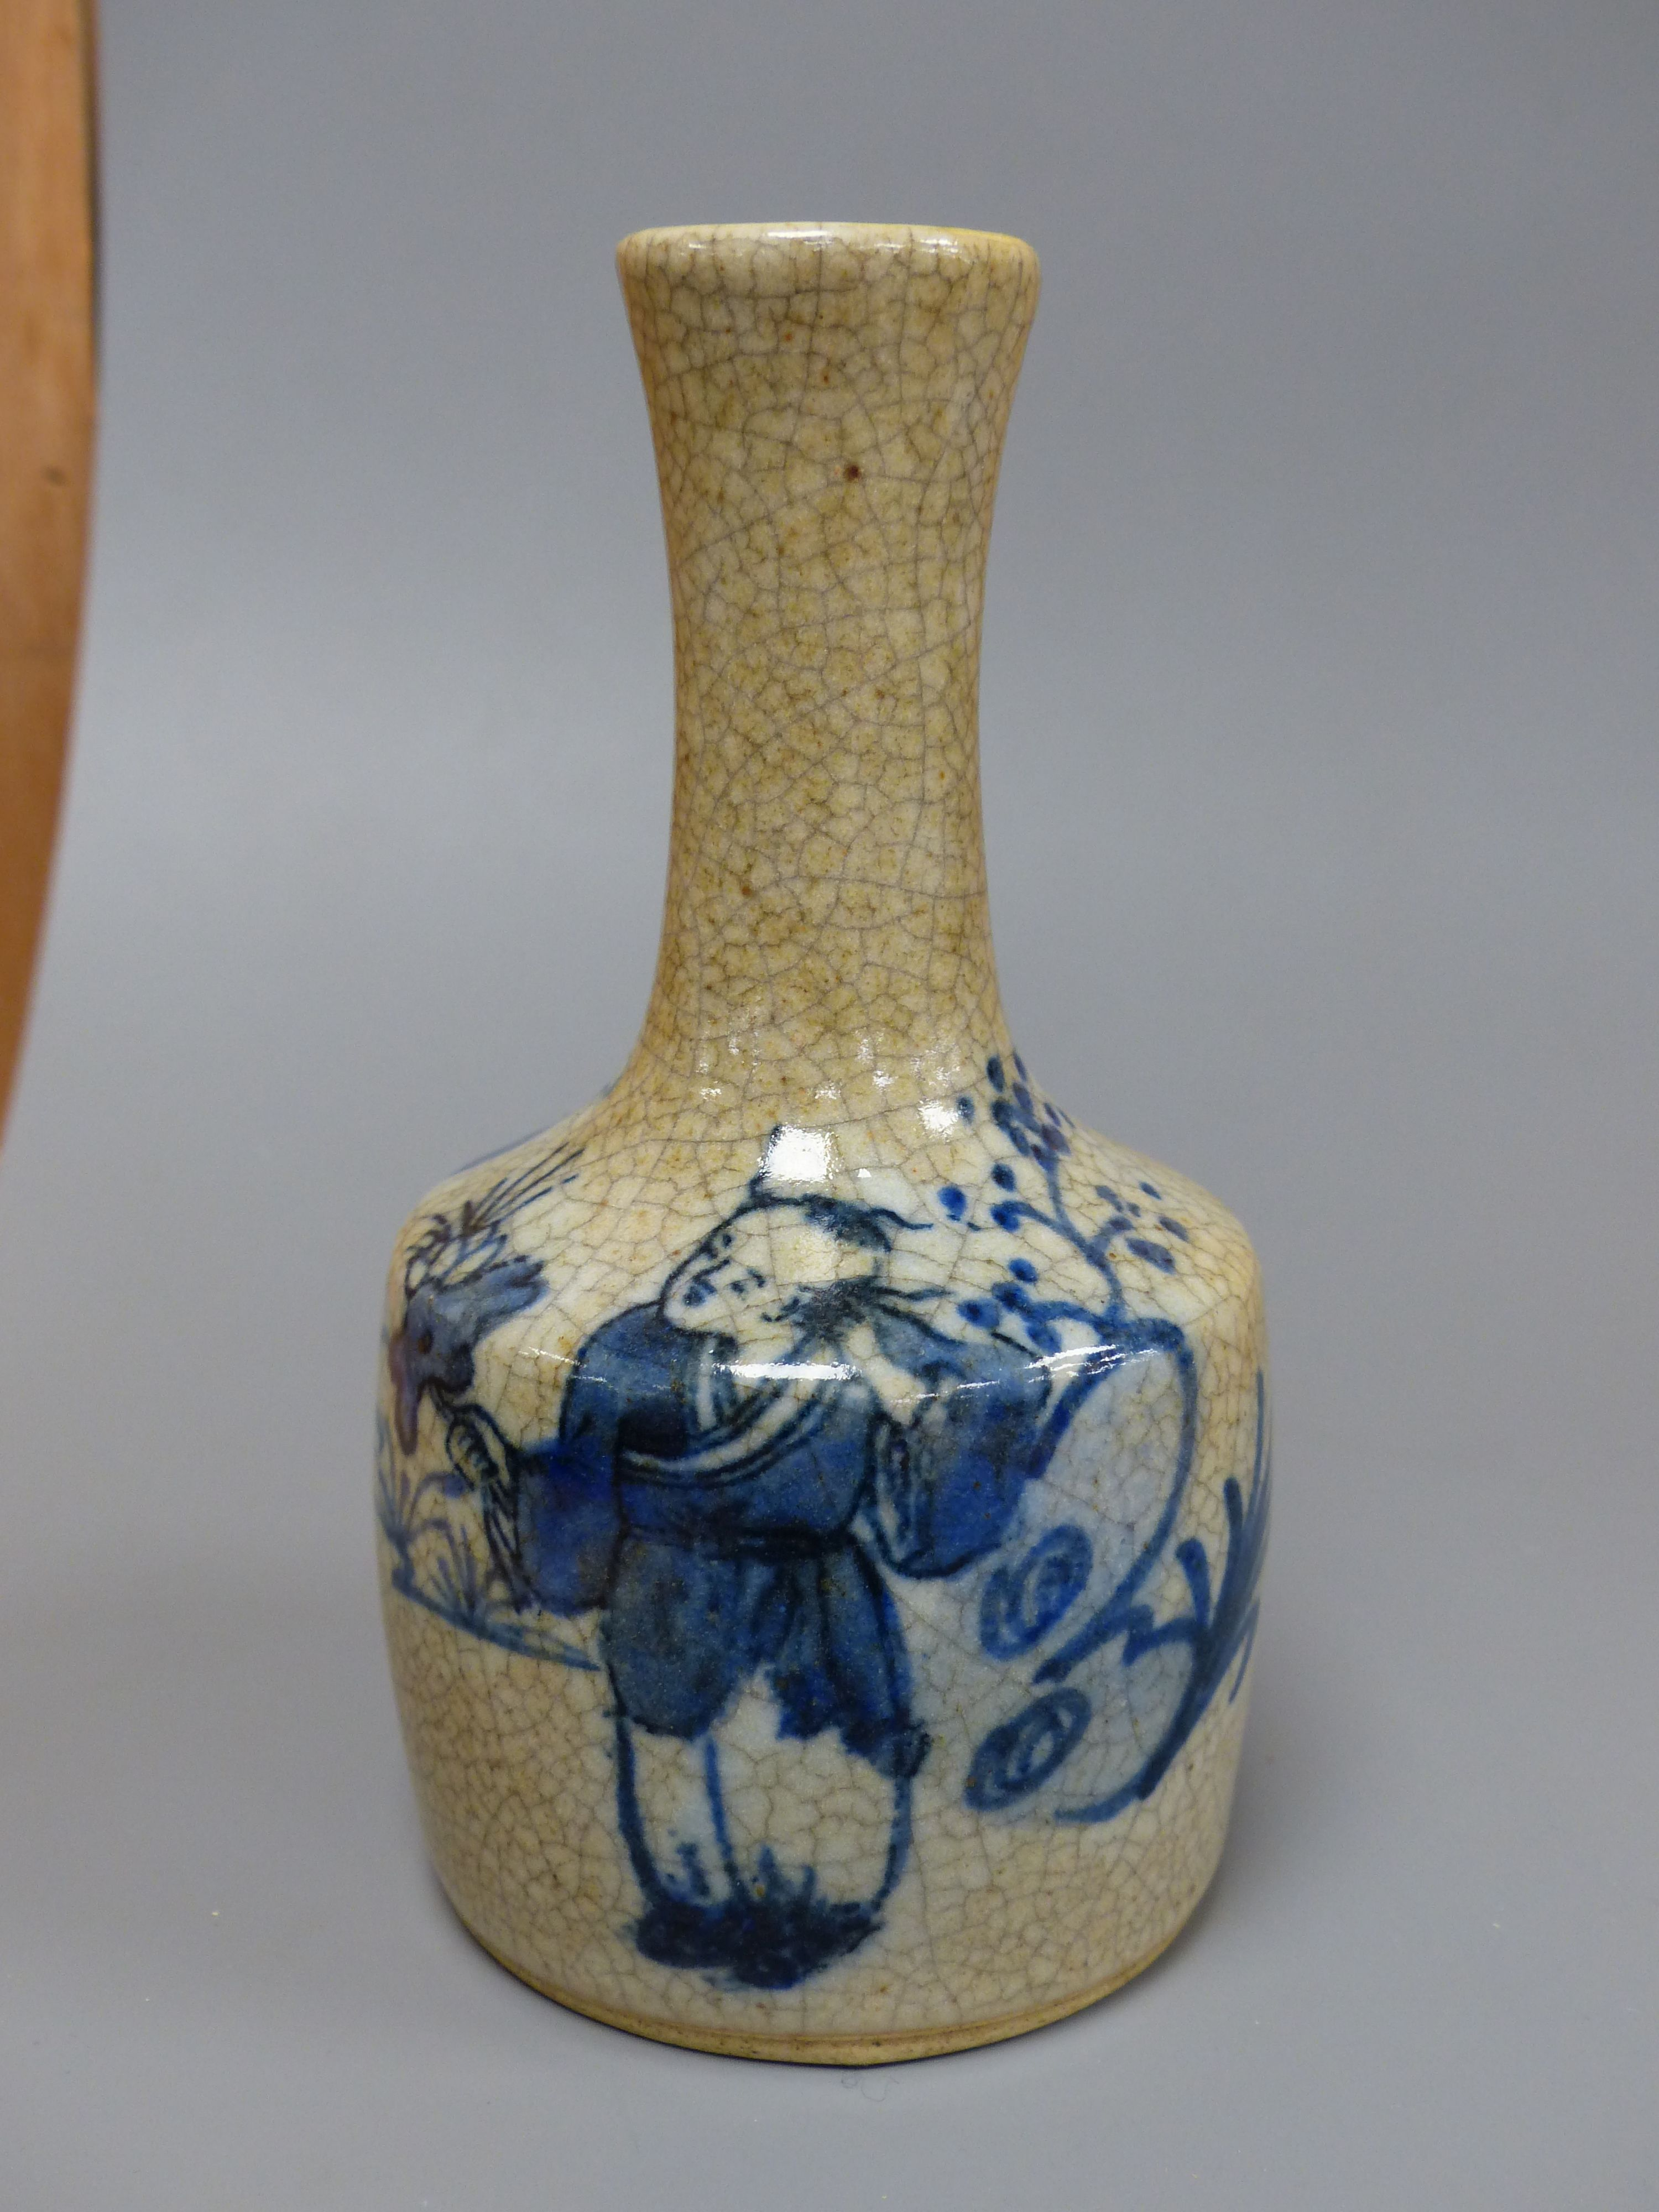 A Chinese blue and white crackle glaze bottle vase, height 15cm - Image 5 of 6